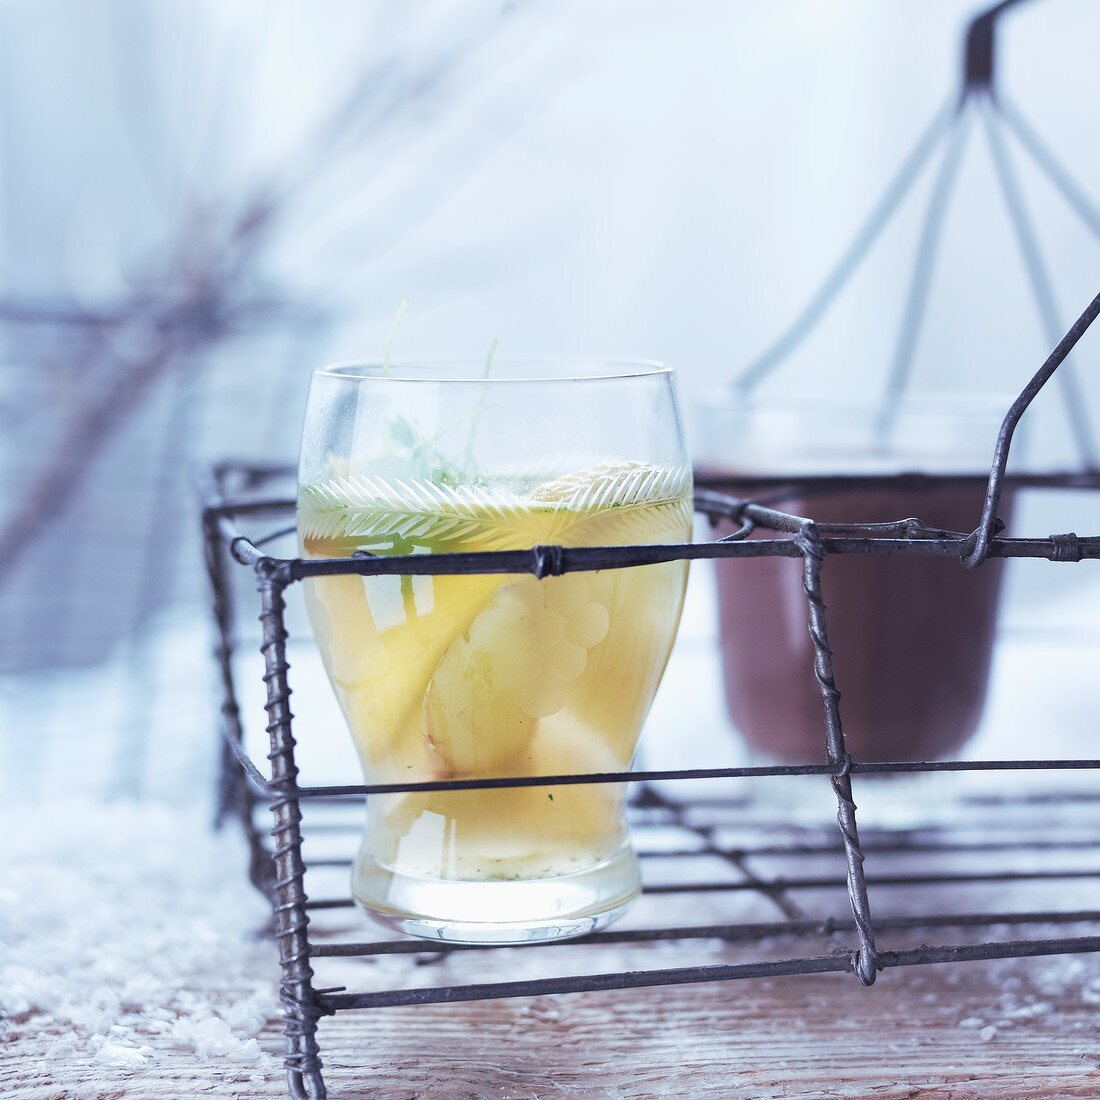 A winter apple drink and hot chocolate